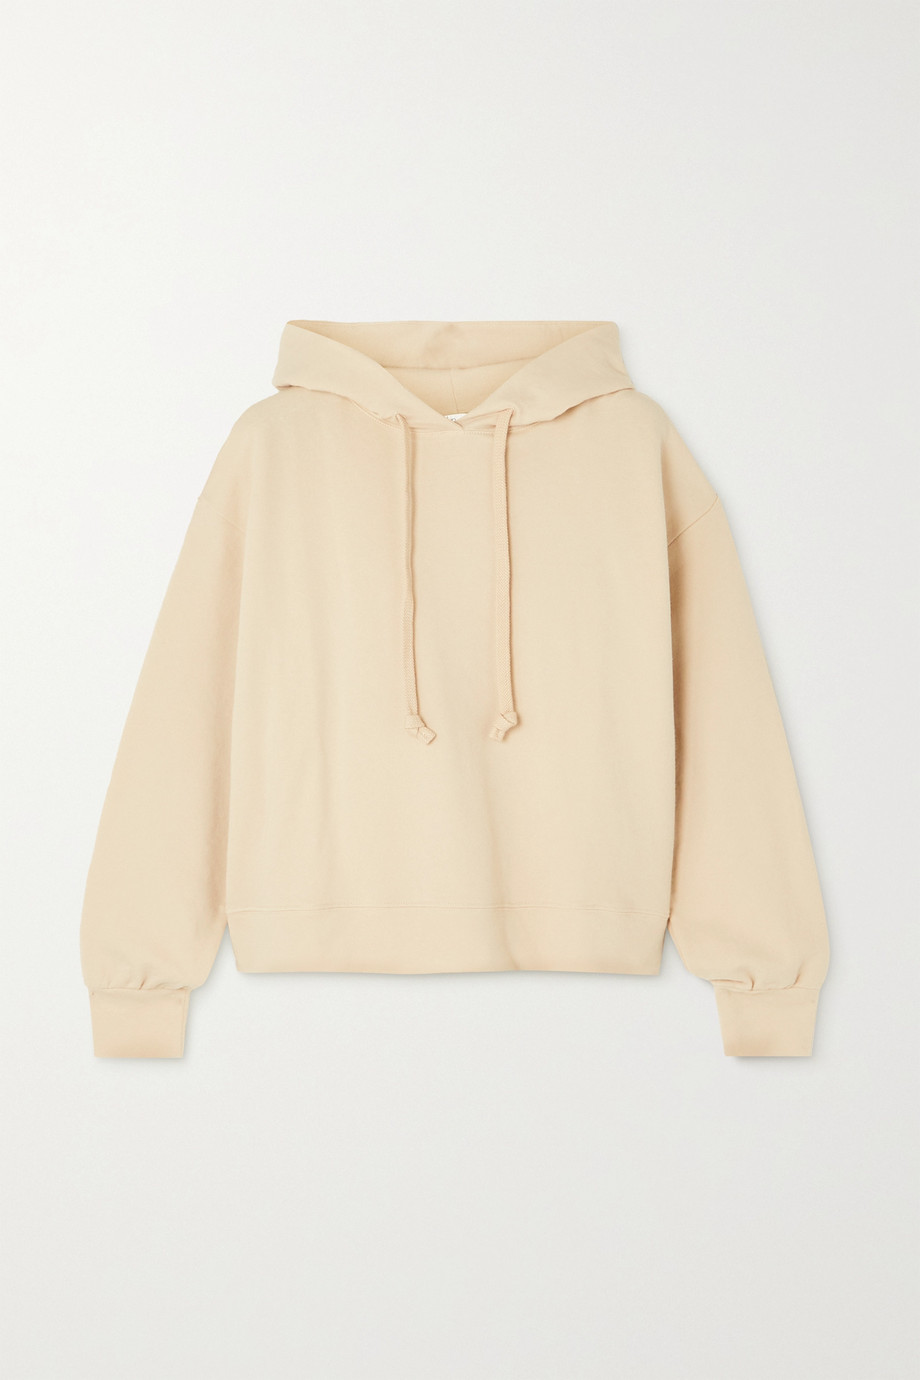 SKIN + NET SUSTAIN Elsie stretch organic cotton-jersey hoodie